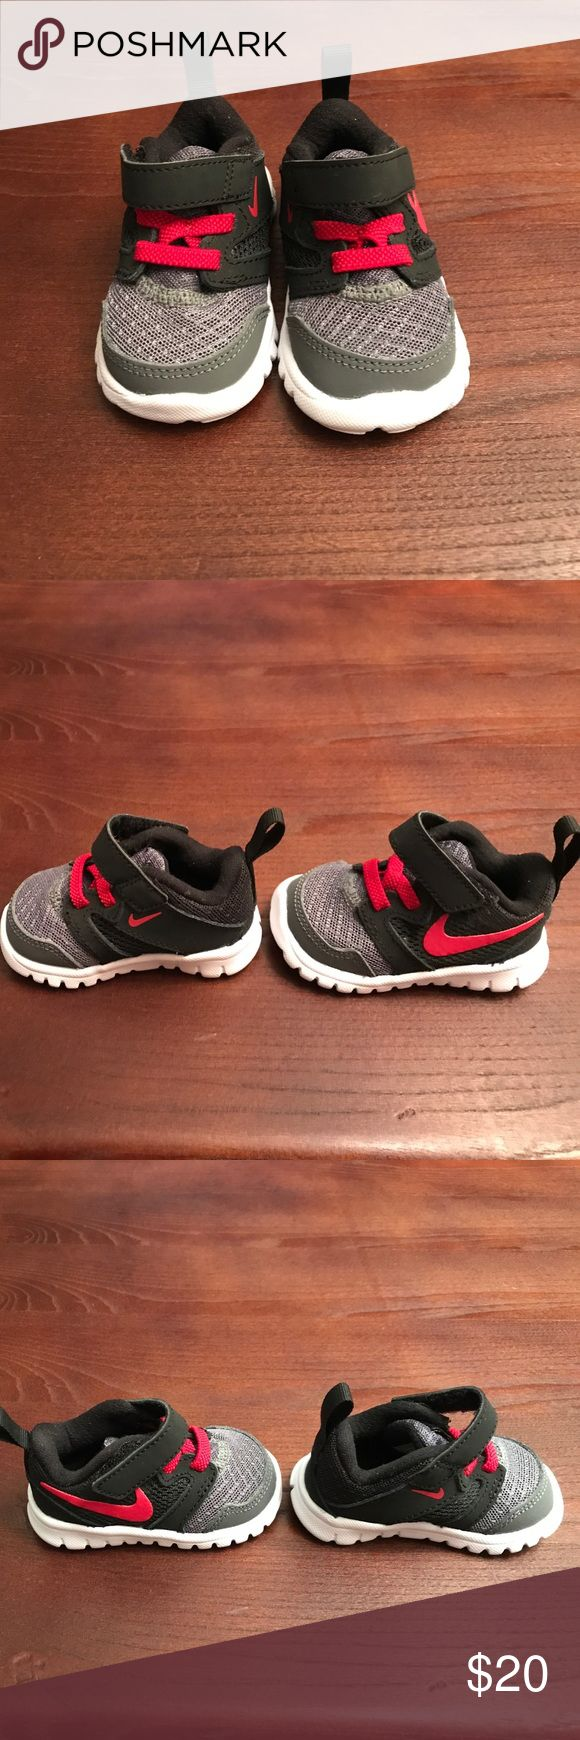 Nike shoes for boys size 2 New Nike shoes for baby boy. Let me know if you have any questions. Also,DO NOT LIST OFFERS IN COMMENT SECTION-SEND A REASONABLE OFFER, NO TRADES. Thank you 😊 Shoes Sneakers